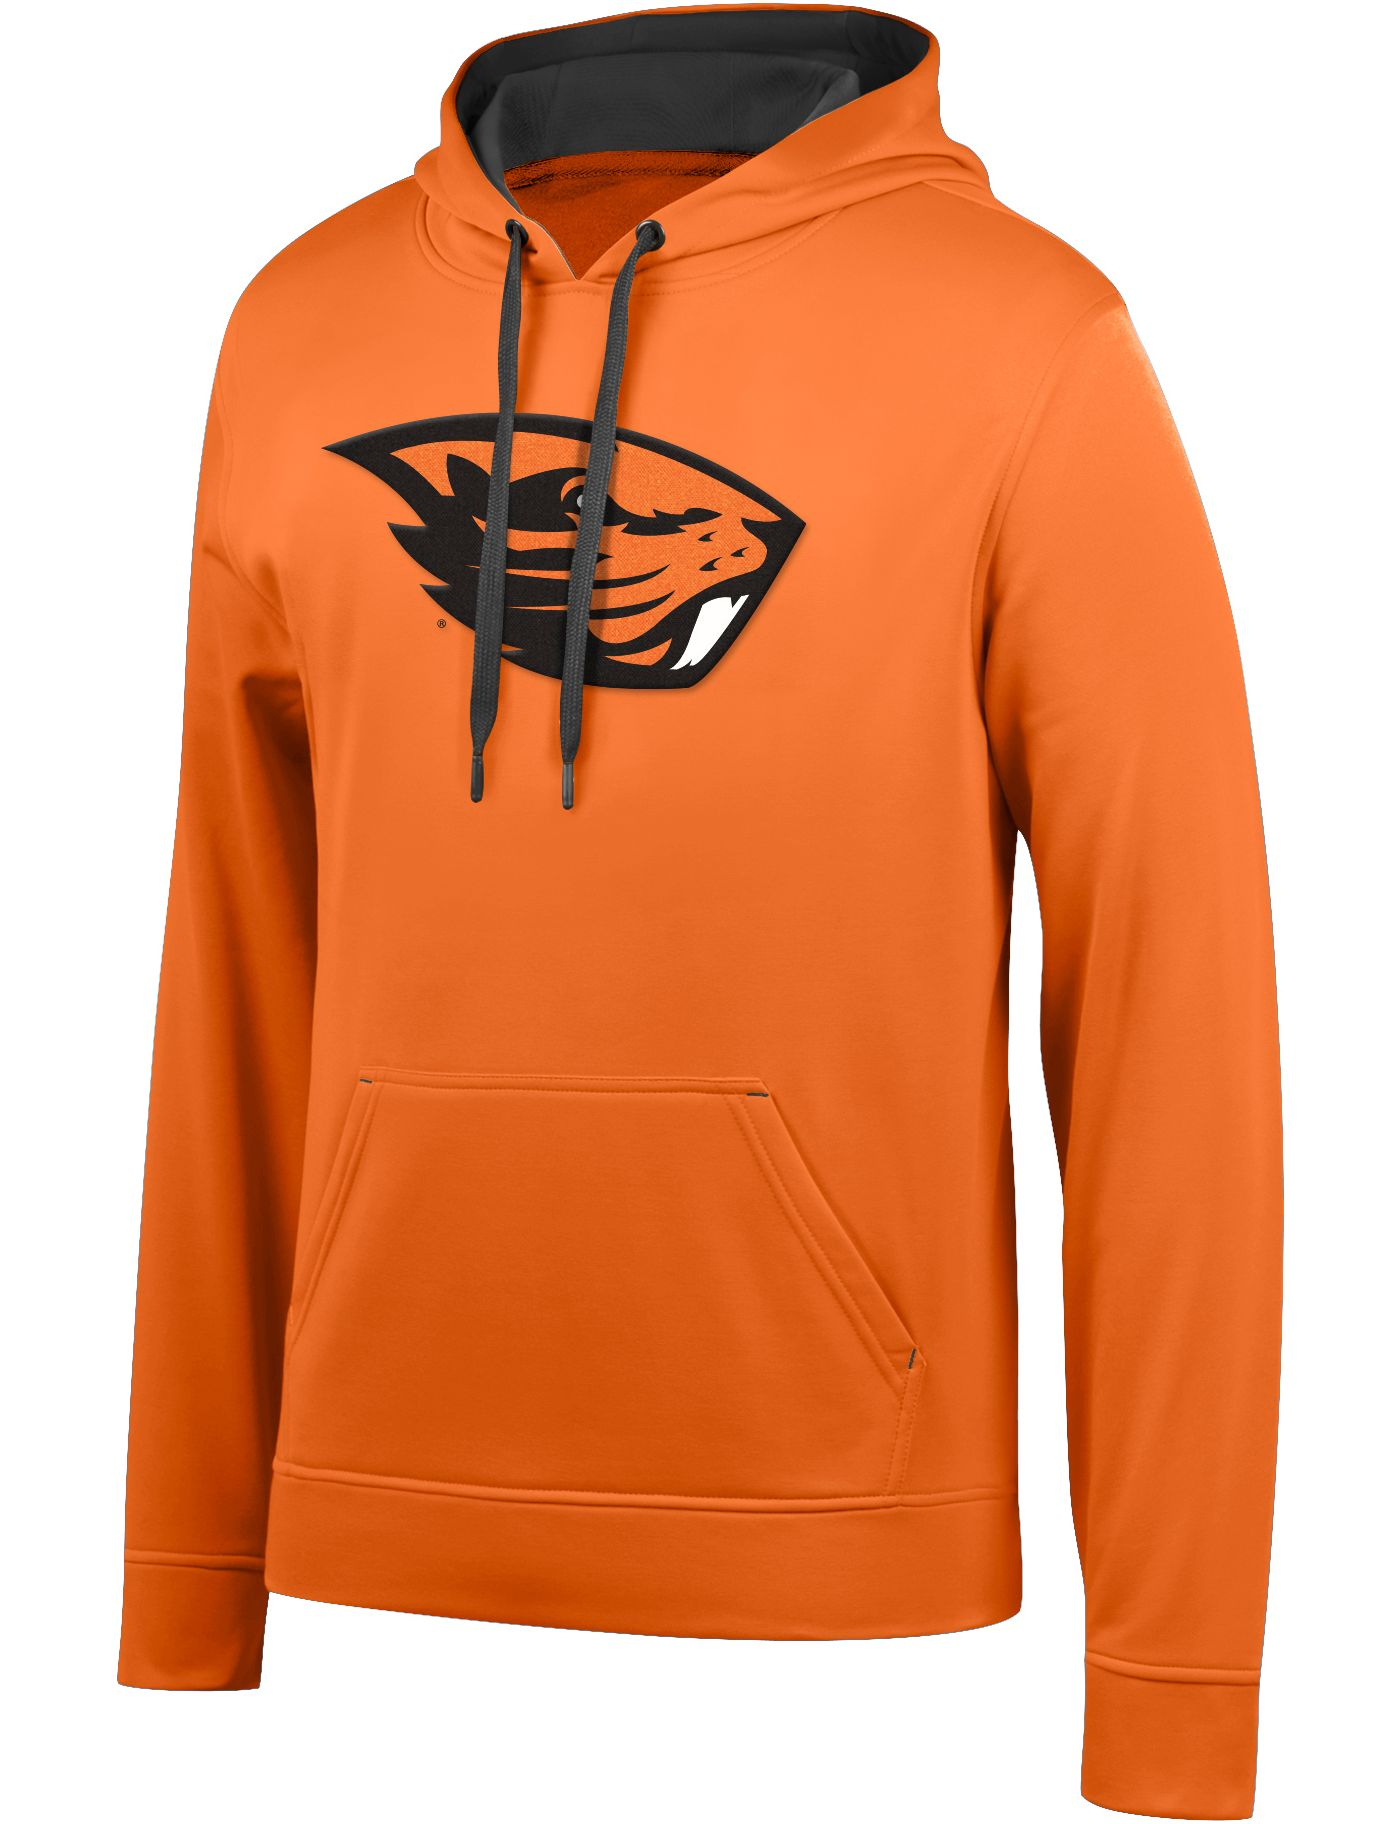 Top of the World Men's Oregon State Beavers Orange Foundation Poly Hoodie